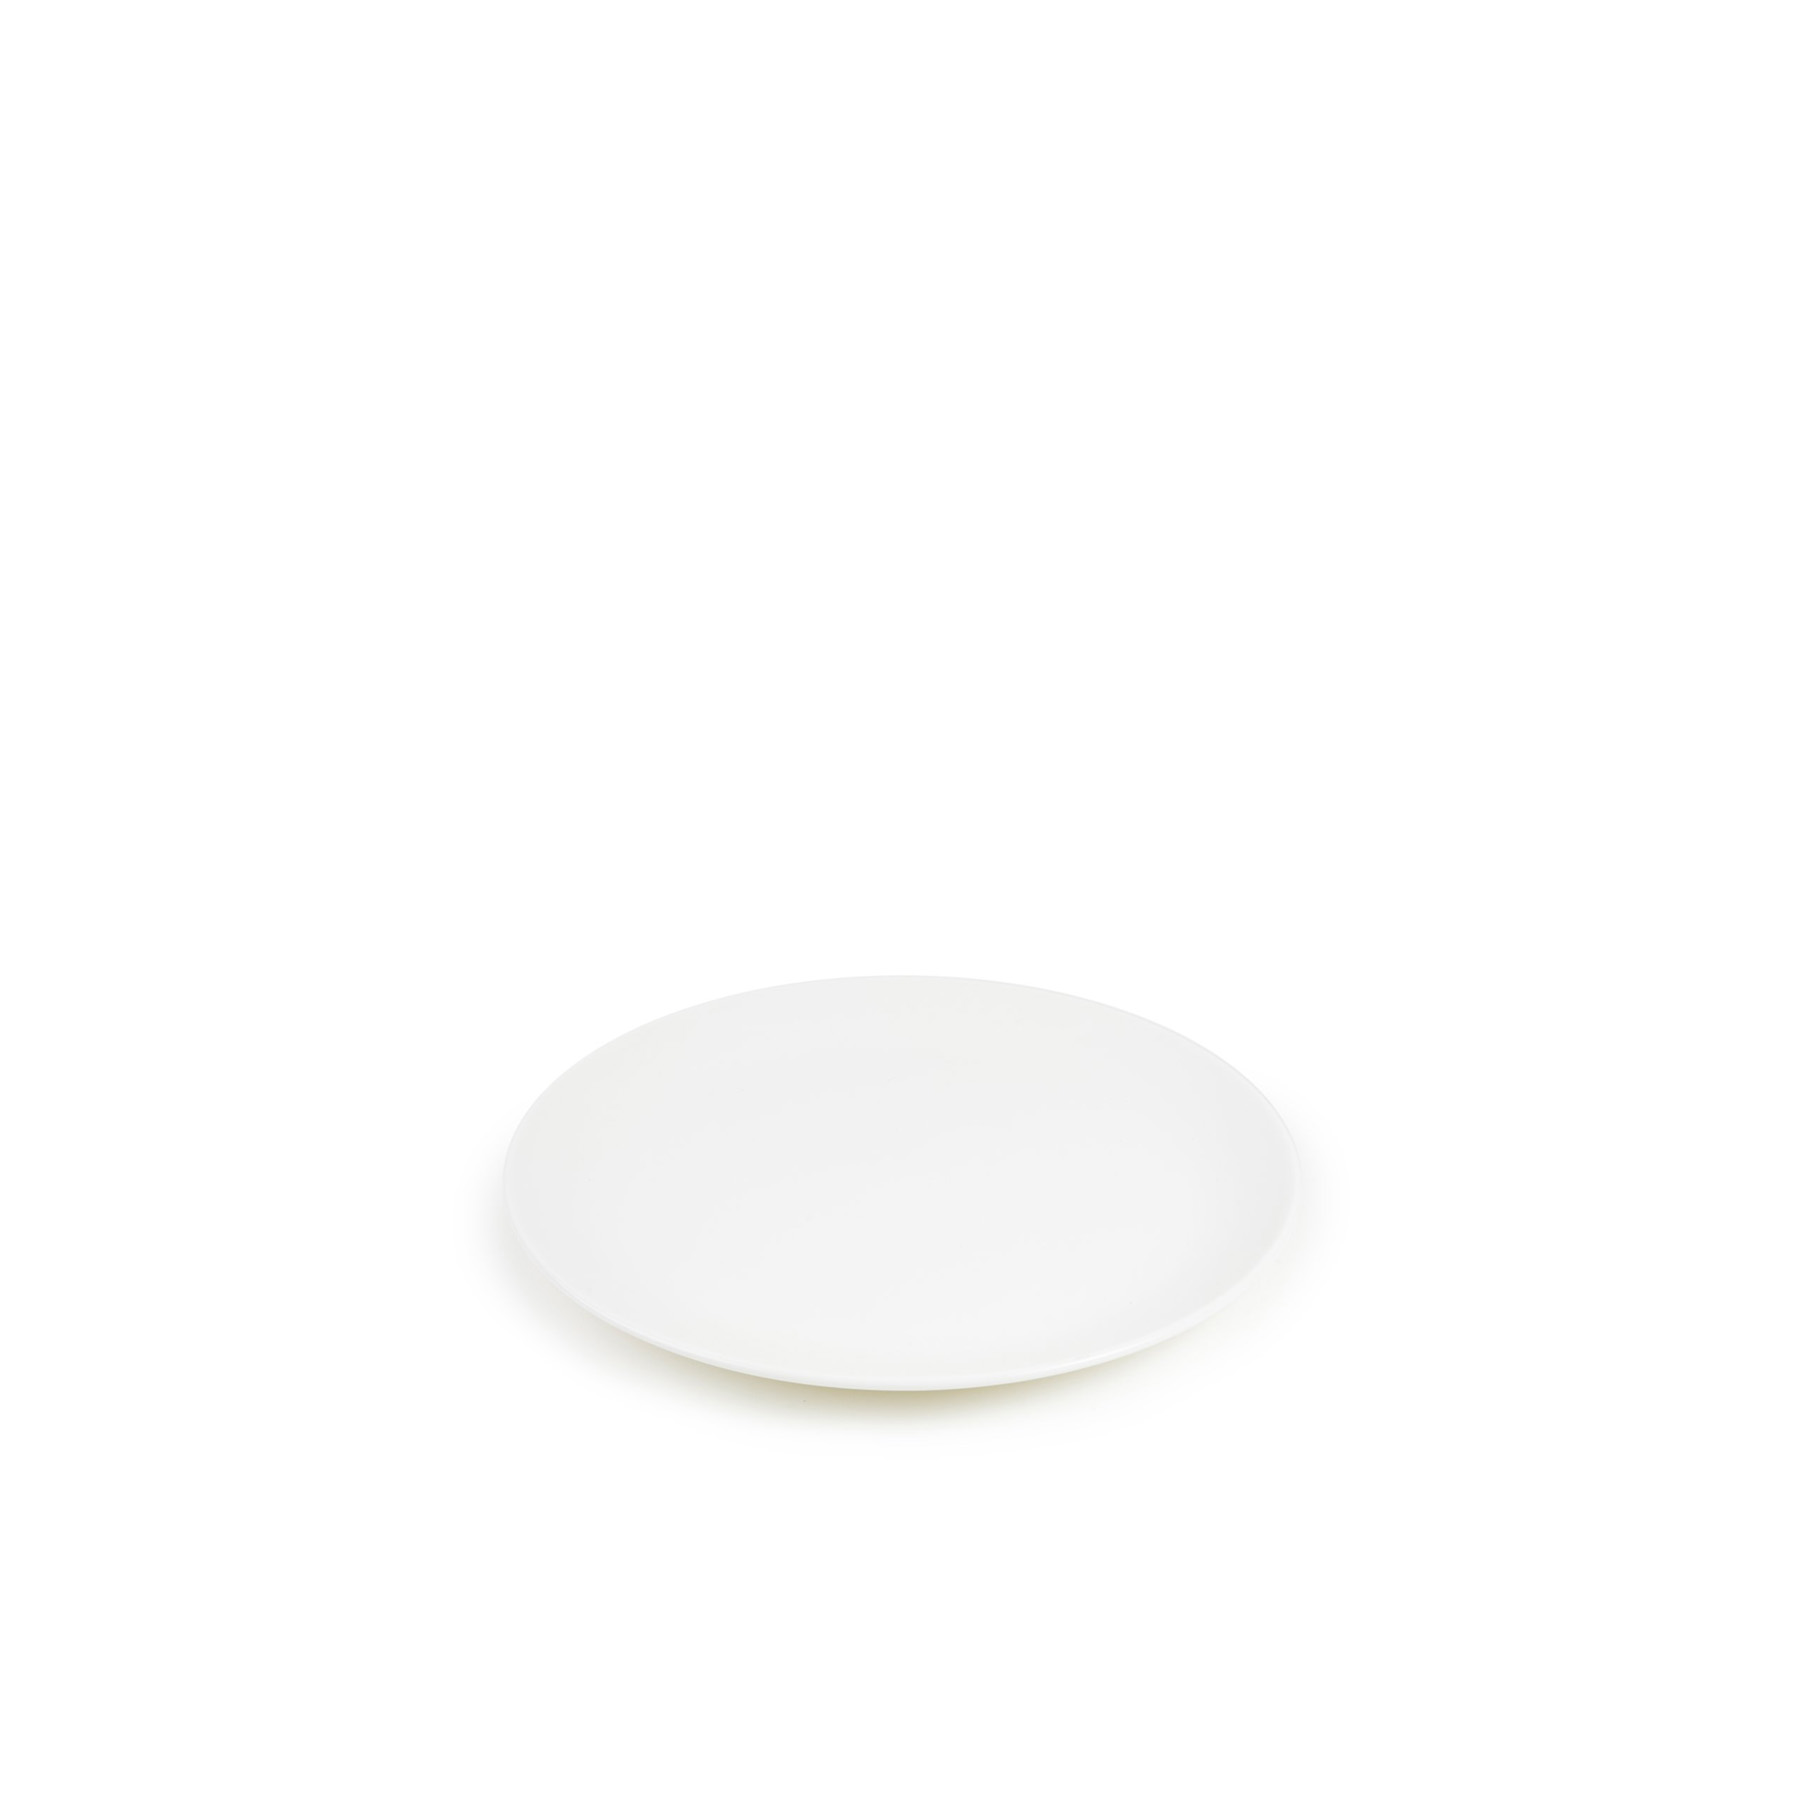 White Dinner Plate - The purist fine bone china table ware. Designed by Chris Johnson and made in Stoke-on-Trent. This forms the base of all our collections and the most wonderful foundation for any table. Made in England. Microwave and dishwasher safe. | Matter of Stuff